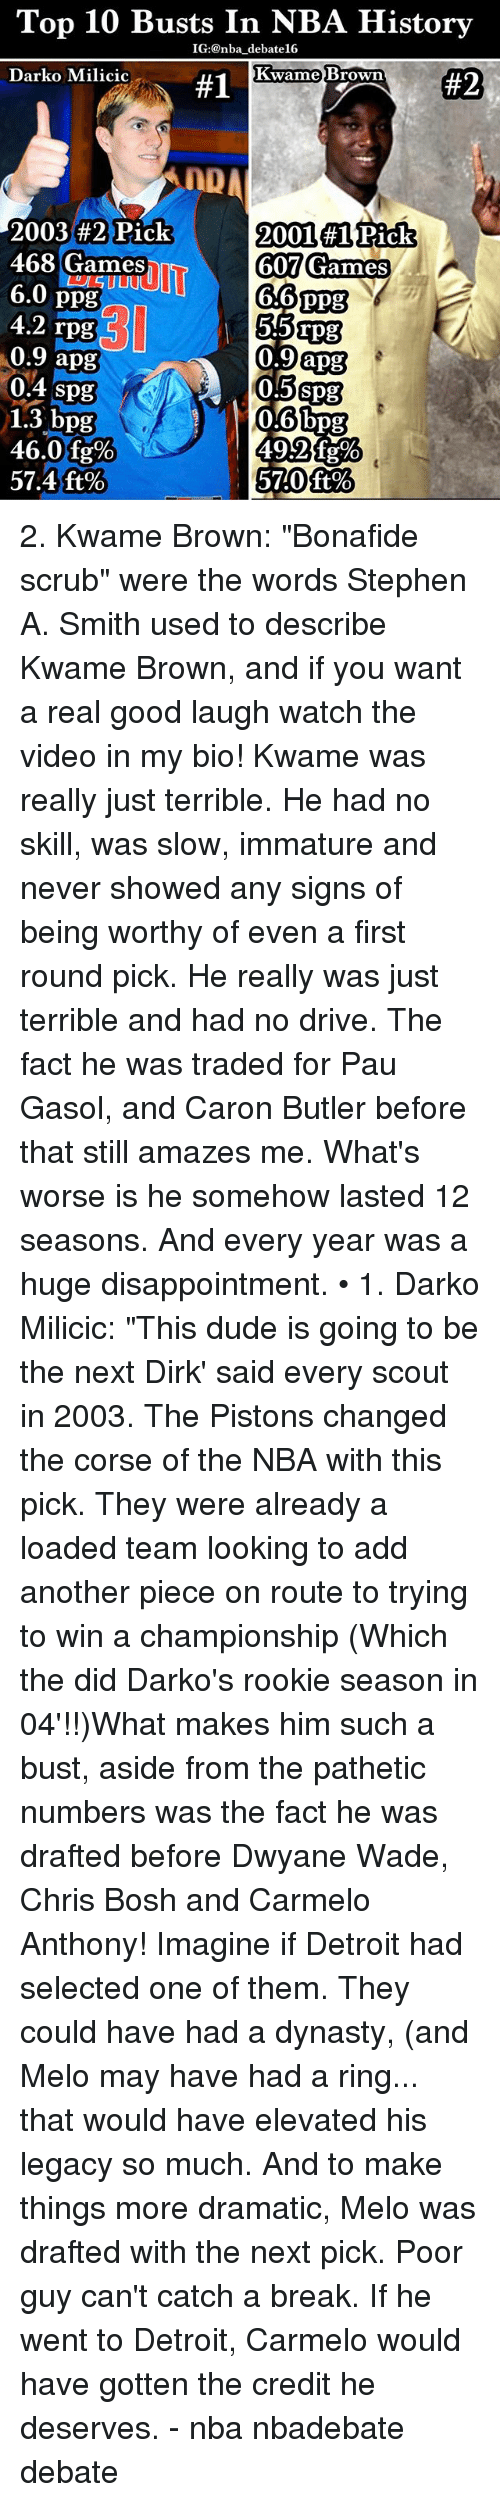 """Carmelo Anthony, Chris Bosh, and Detroit: Top 10 Busts In NBA History  IG: nba debatel6  Kwame Brown  Darko Milicic  #2  #1  IDA  2003 #2 Pick  2001 #1 Pick  468 Games  607 Games  6.0  ppg  66 ppg  4.2 rpg  55 rpg  0,9 apg  0.9 apg  0.4 spg  0.5 spg  0.6 bpg  1.3 bpg  46.0 fg%  57.4 ft  5740 ft% 2. Kwame Brown: """"Bonafide scrub"""" were the words Stephen A. Smith used to describe Kwame Brown, and if you want a real good laugh watch the video in my bio! Kwame was really just terrible. He had no skill, was slow, immature and never showed any signs of being worthy of even a first round pick. He really was just terrible and had no drive. The fact he was traded for Pau Gasol, and Caron Butler before that still amazes me. What's worse is he somehow lasted 12 seasons. And every year was a huge disappointment. • 1. Darko Milicic: """"This dude is going to be the next Dirk' said every scout in 2003. The Pistons changed the corse of the NBA with this pick. They were already a loaded team looking to add another piece on route to trying to win a championship (Which the did Darko's rookie season in 04'!!)What makes him such a bust, aside from the pathetic numbers was the fact he was drafted before Dwyane Wade, Chris Bosh and Carmelo Anthony! Imagine if Detroit had selected one of them. They could have had a dynasty, (and Melo may have had a ring... that would have elevated his legacy so much. And to make things more dramatic, Melo was drafted with the next pick. Poor guy can't catch a break. If he went to Detroit, Carmelo would have gotten the credit he deserves. - nba nbadebate debate"""